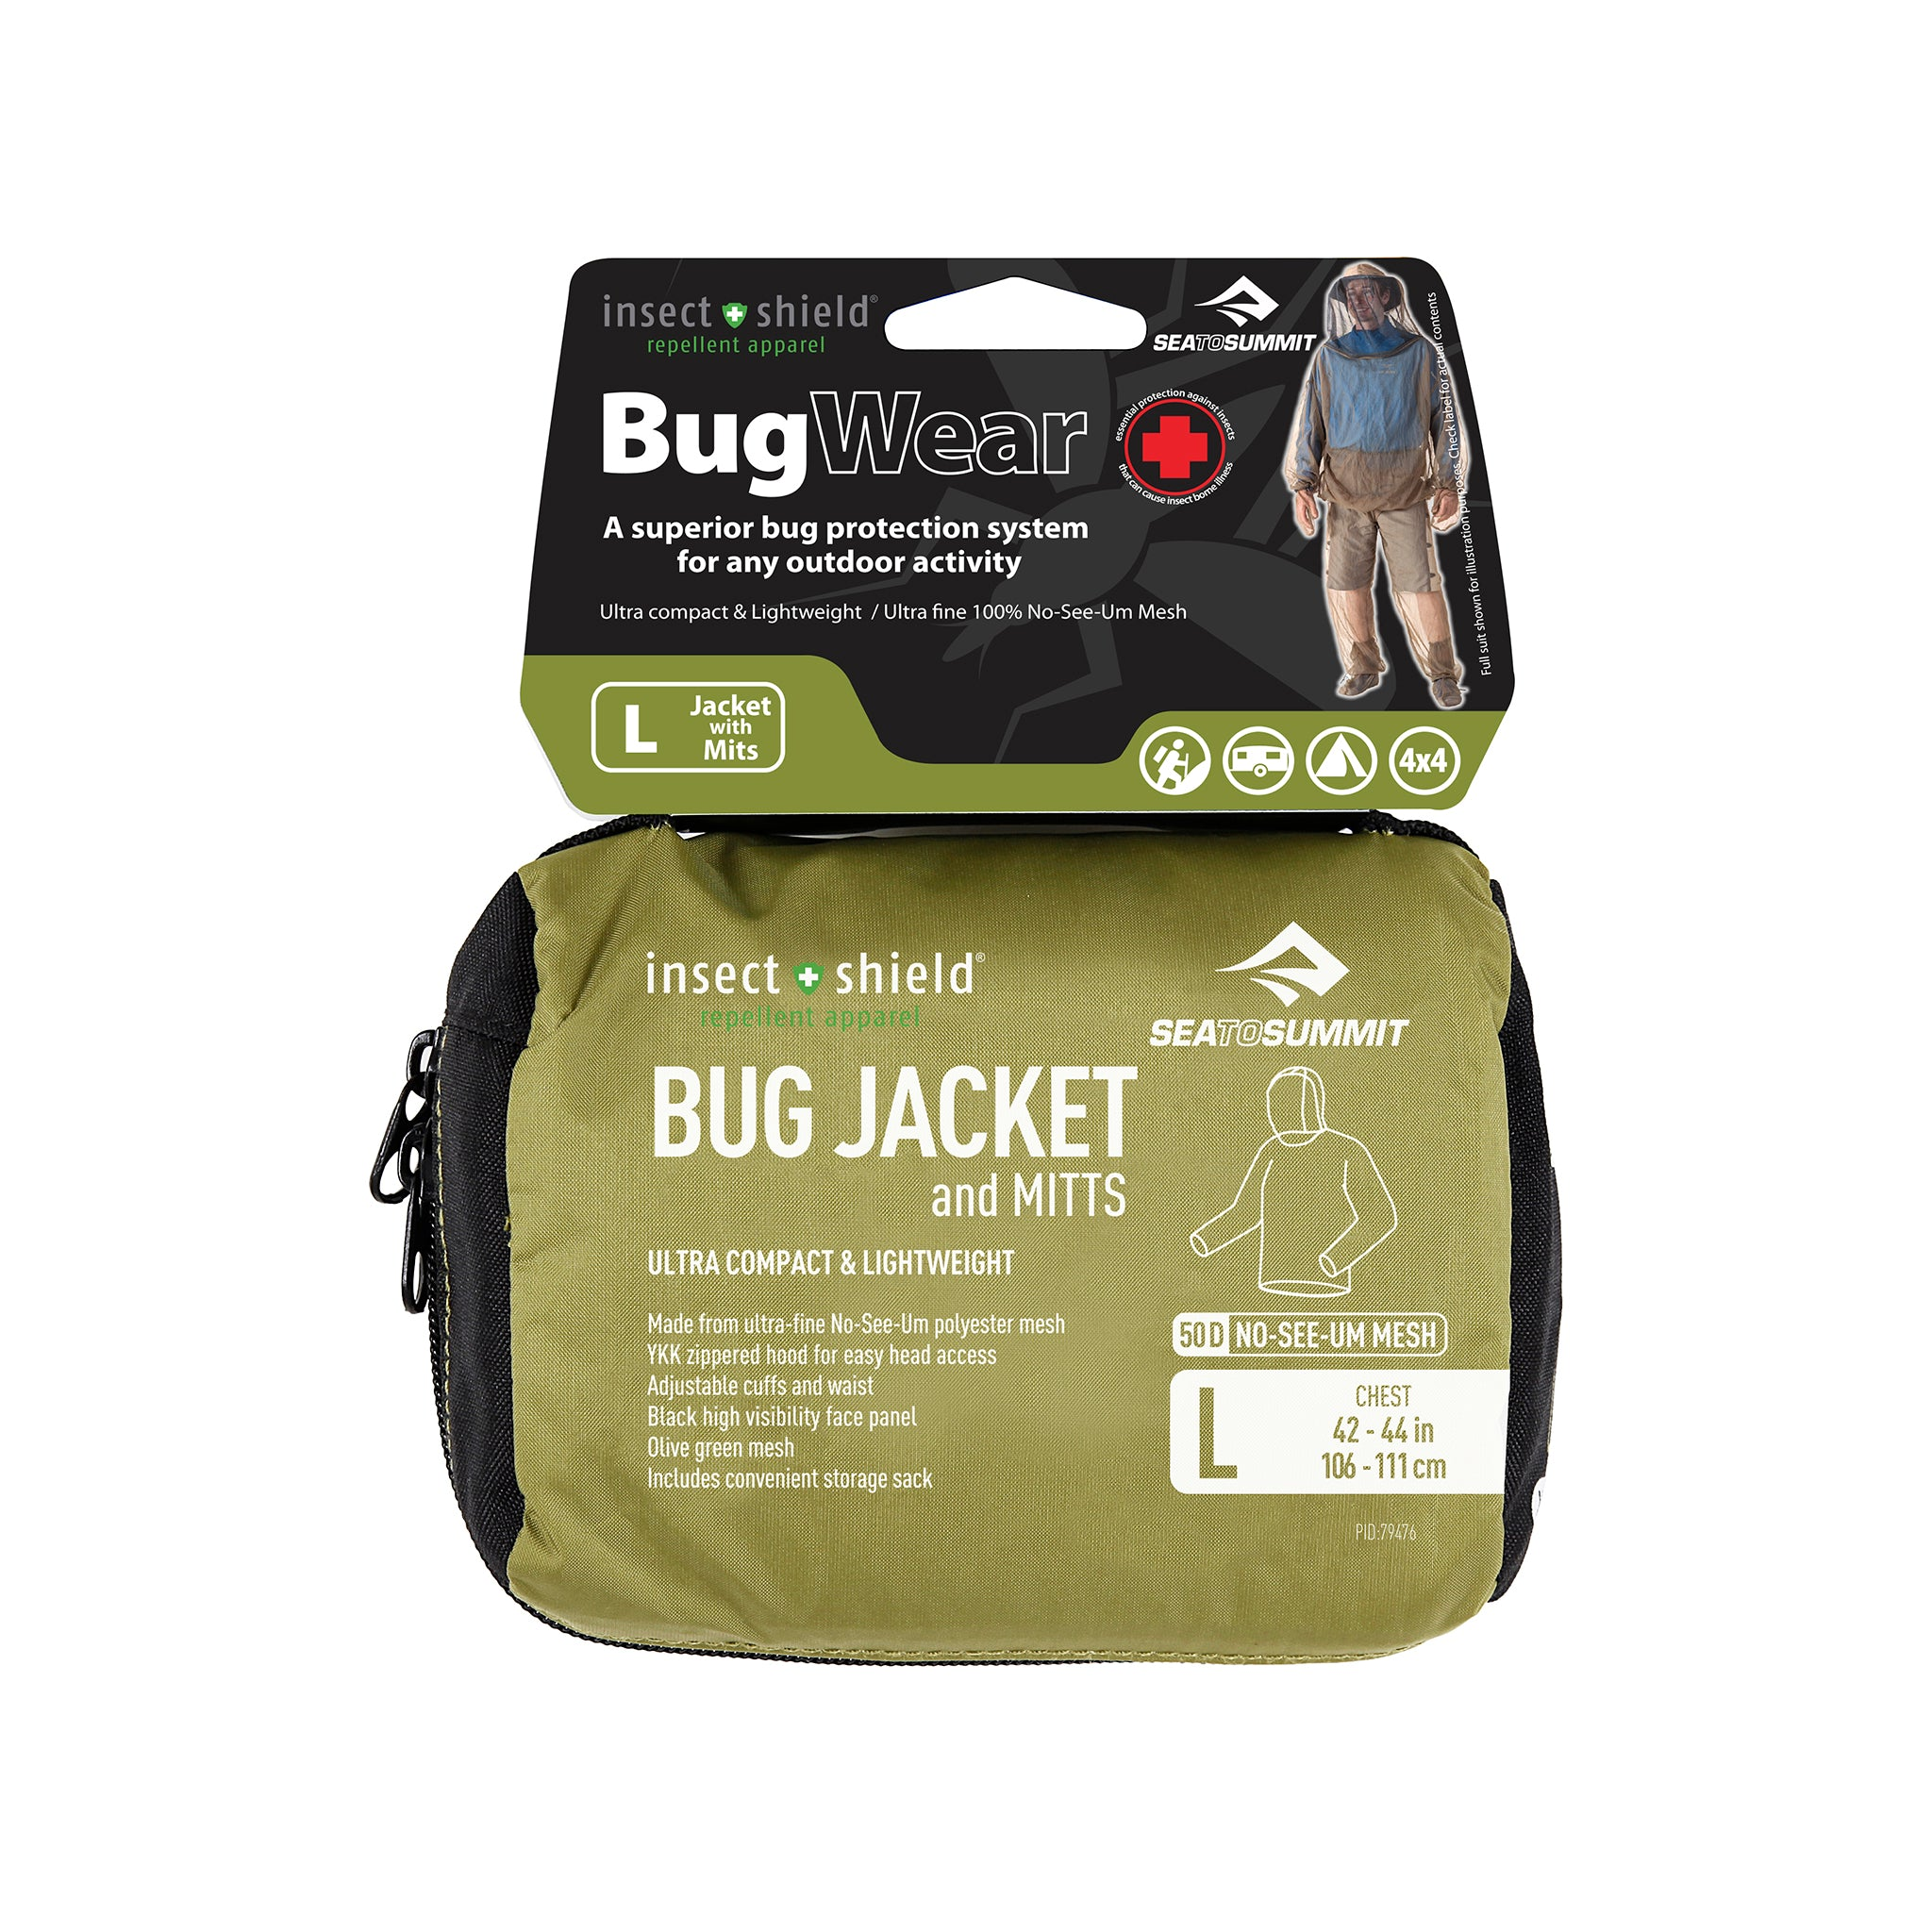 Bug Jacket _ mosquito protection clothing _ insect shield _ large